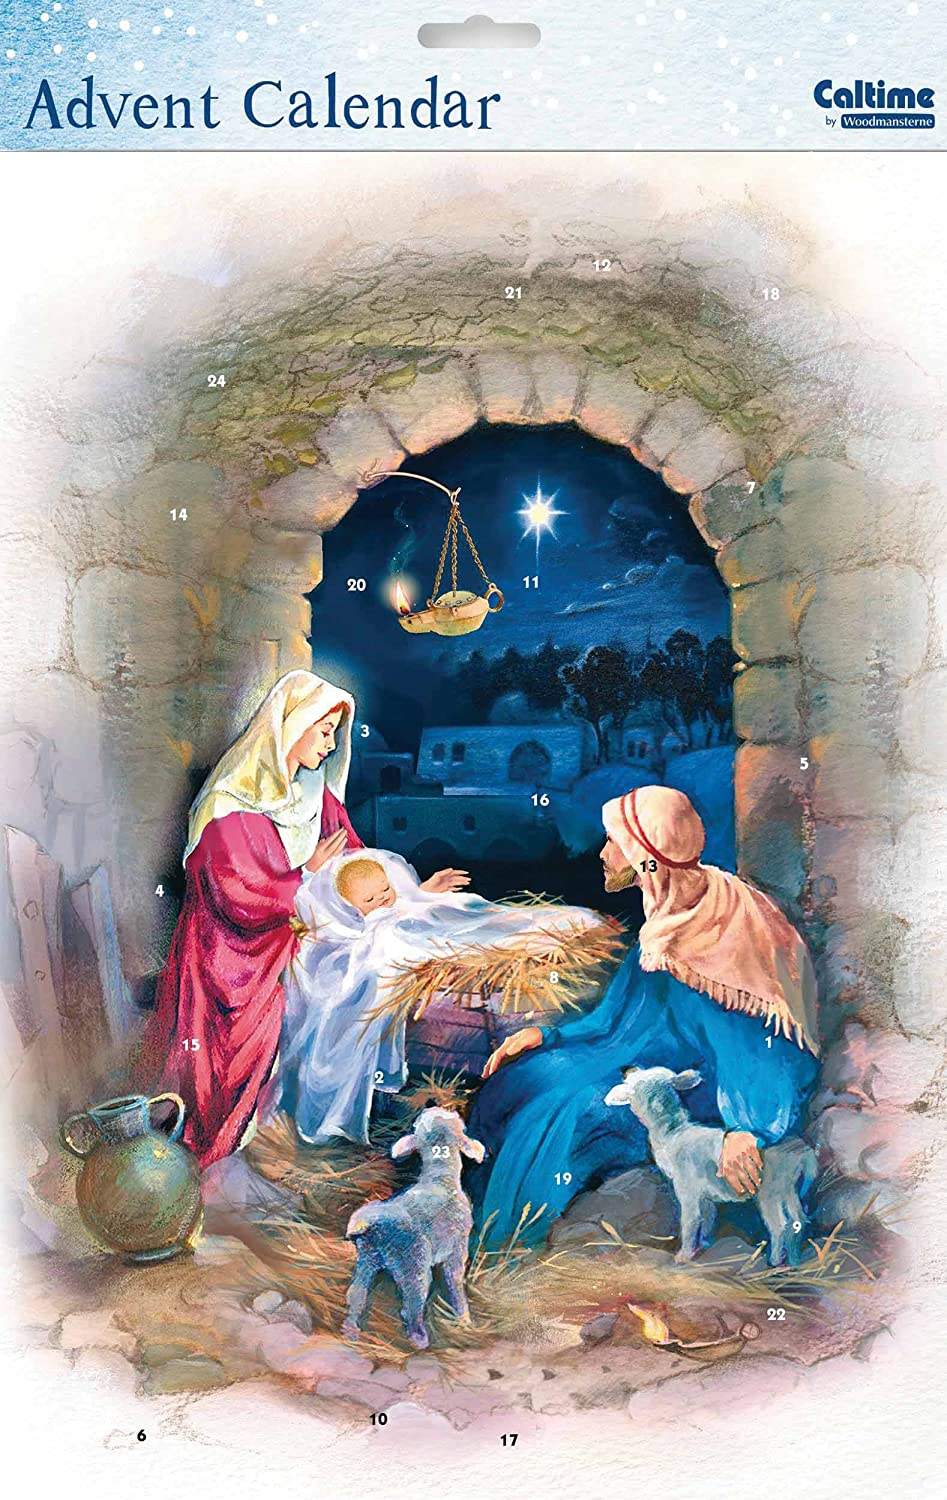 Advent Calendar (WDM9795) Caltime - Nativity Archway - Glitter Varnished by Caltime Woodmansterne